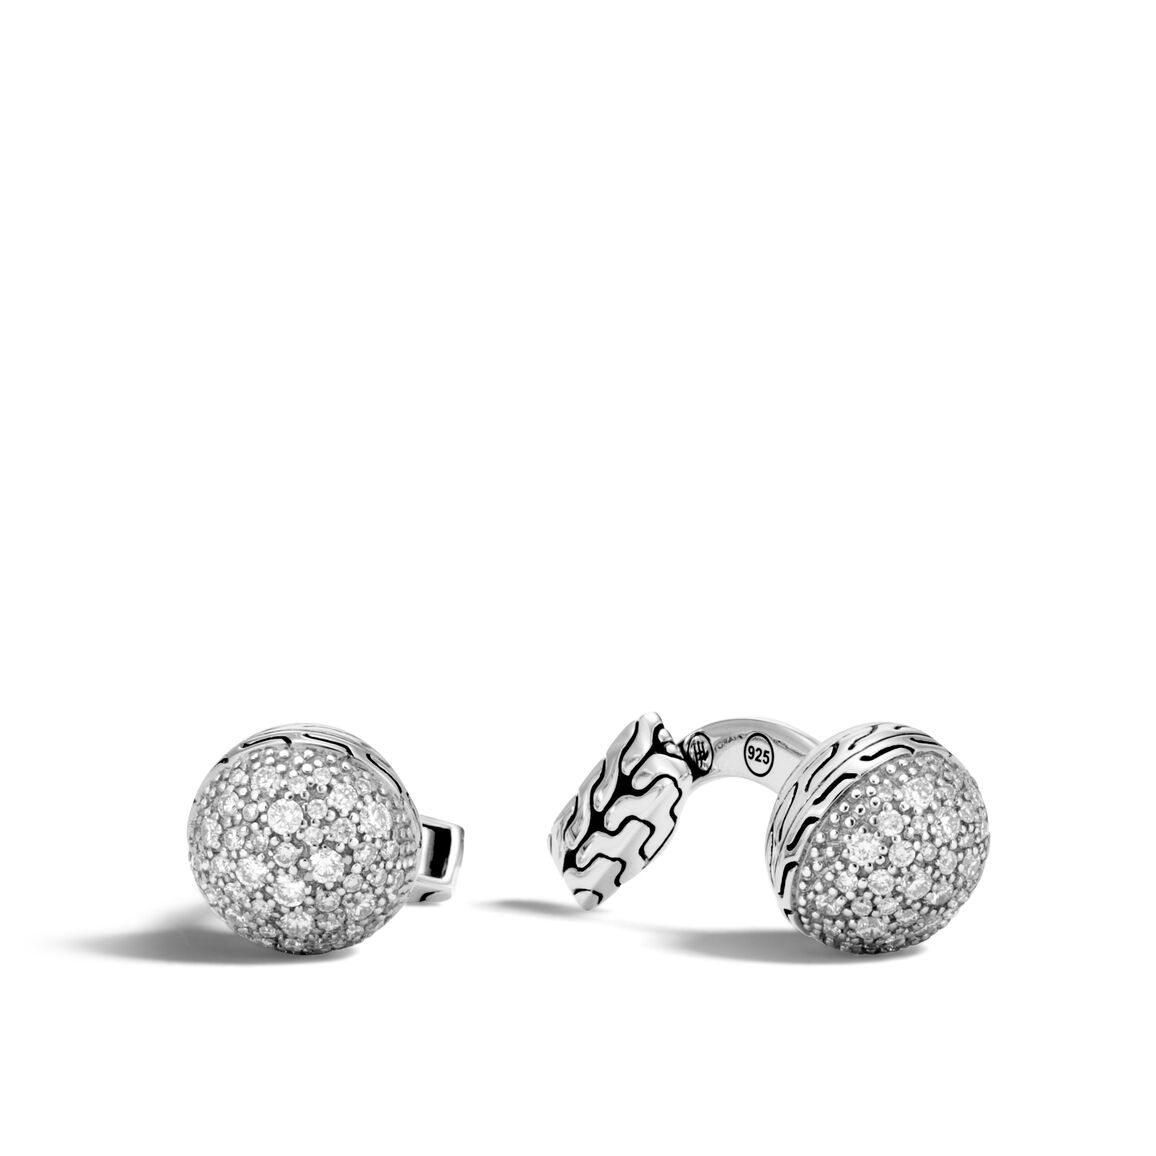 Classic Chain Ball Cufflinks in Silver with Gemstone